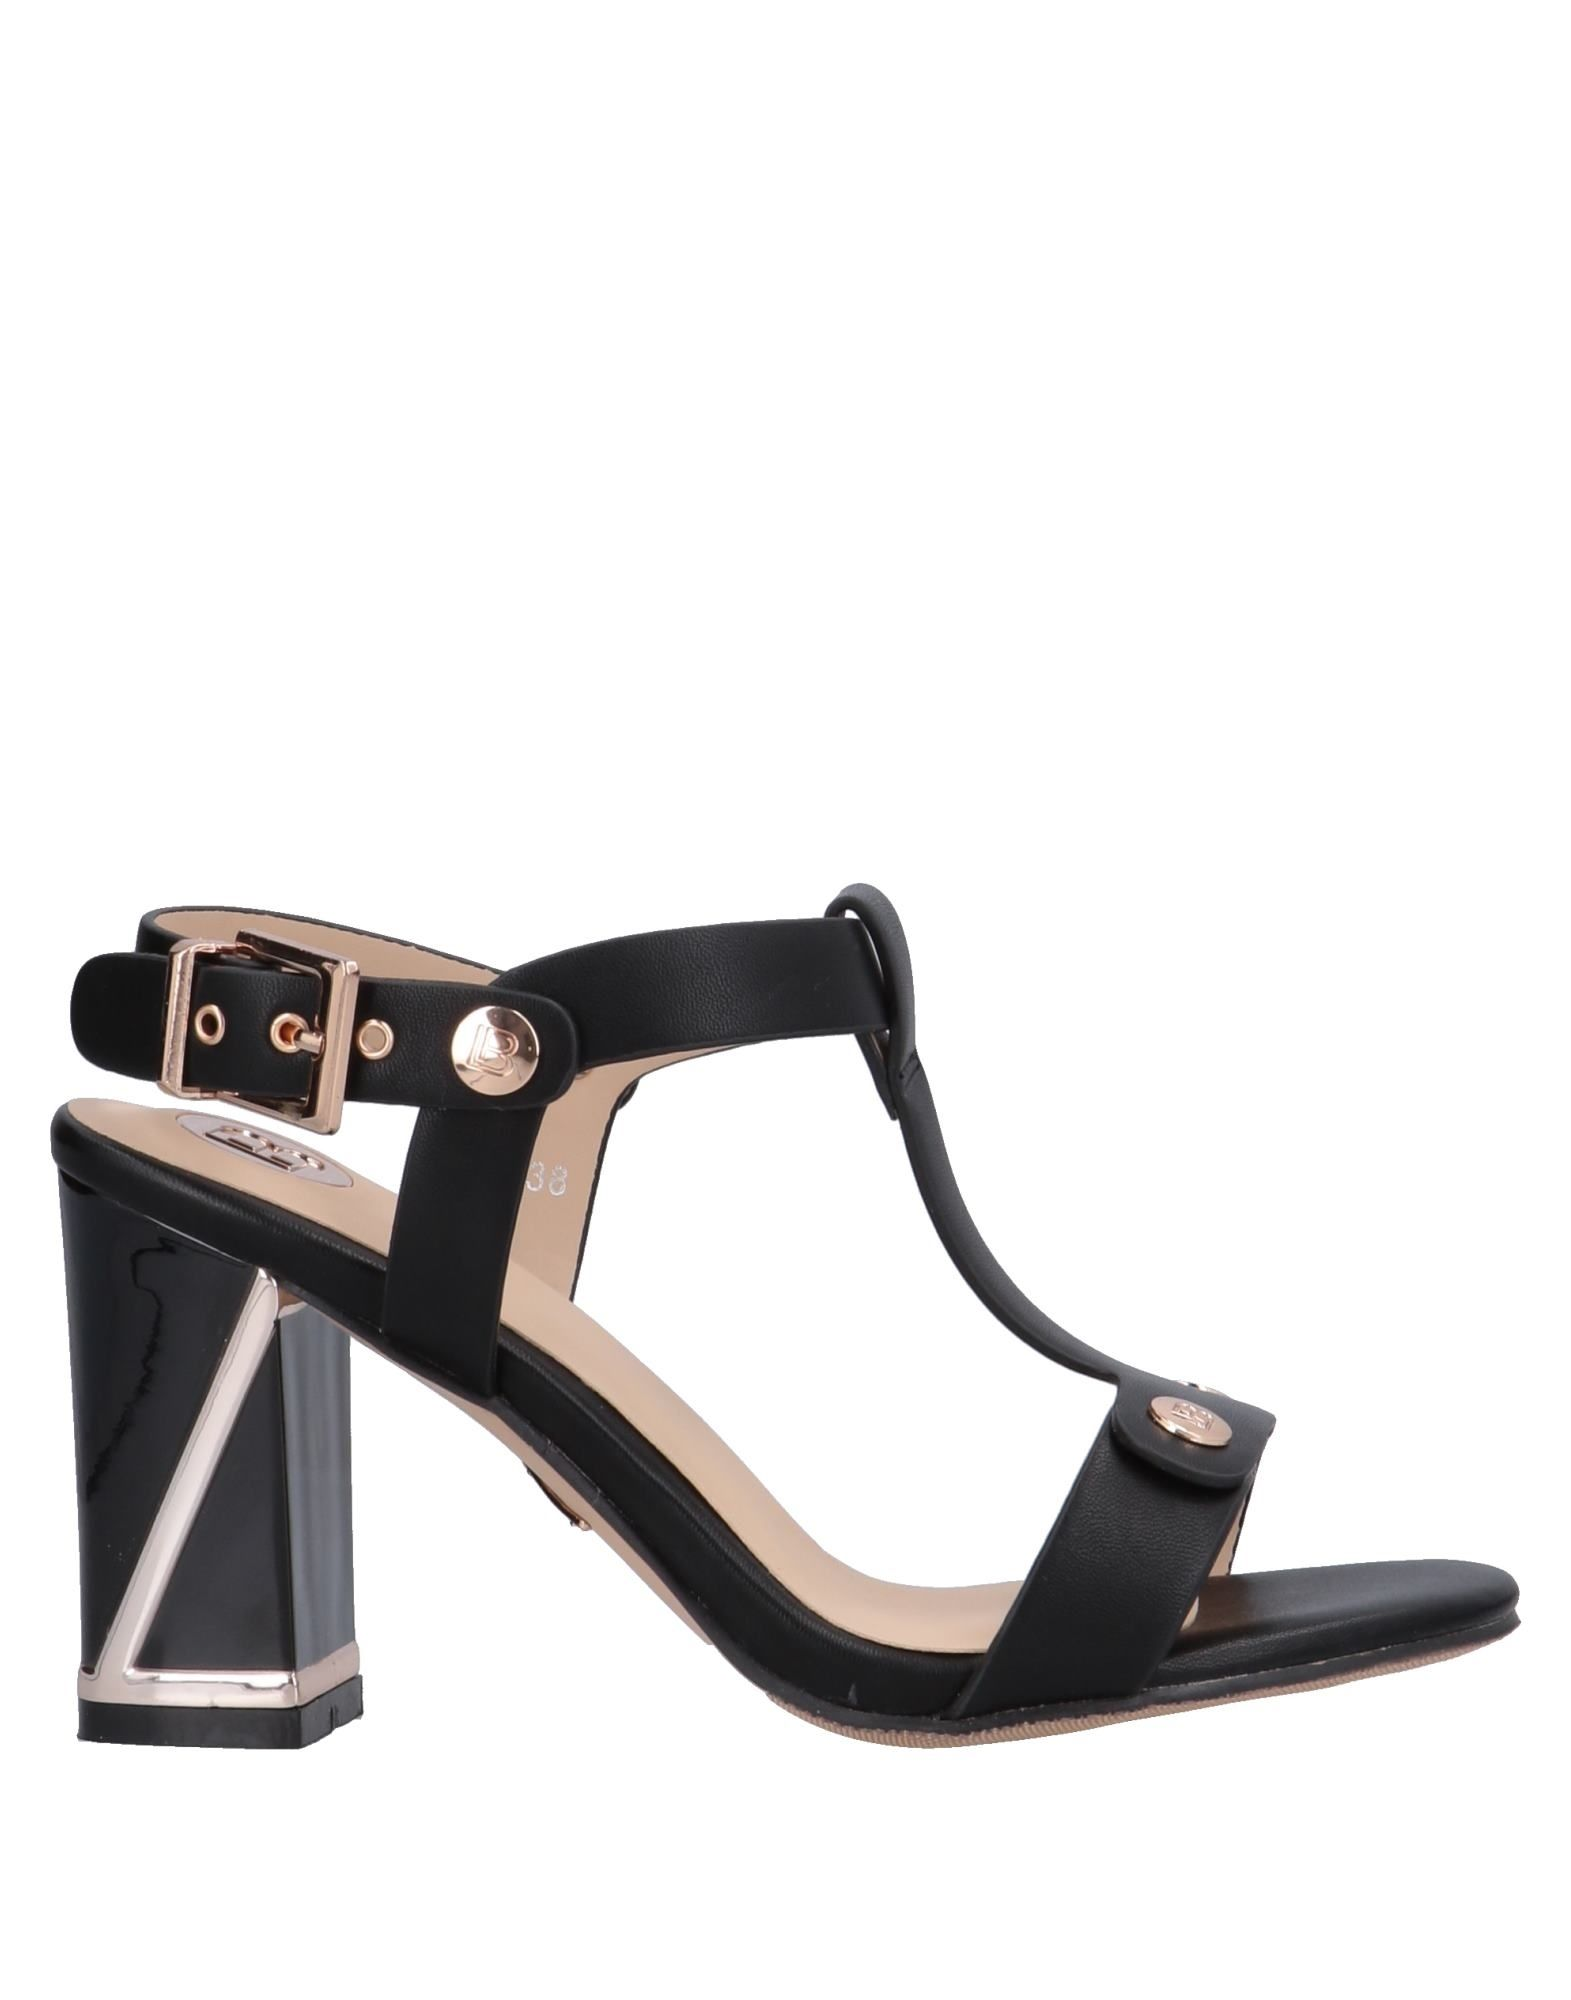 Laura Biagiotti Sandals - Women Laura Biagiotti Sandals online on -  Australia - on 11566417EC c8dd78